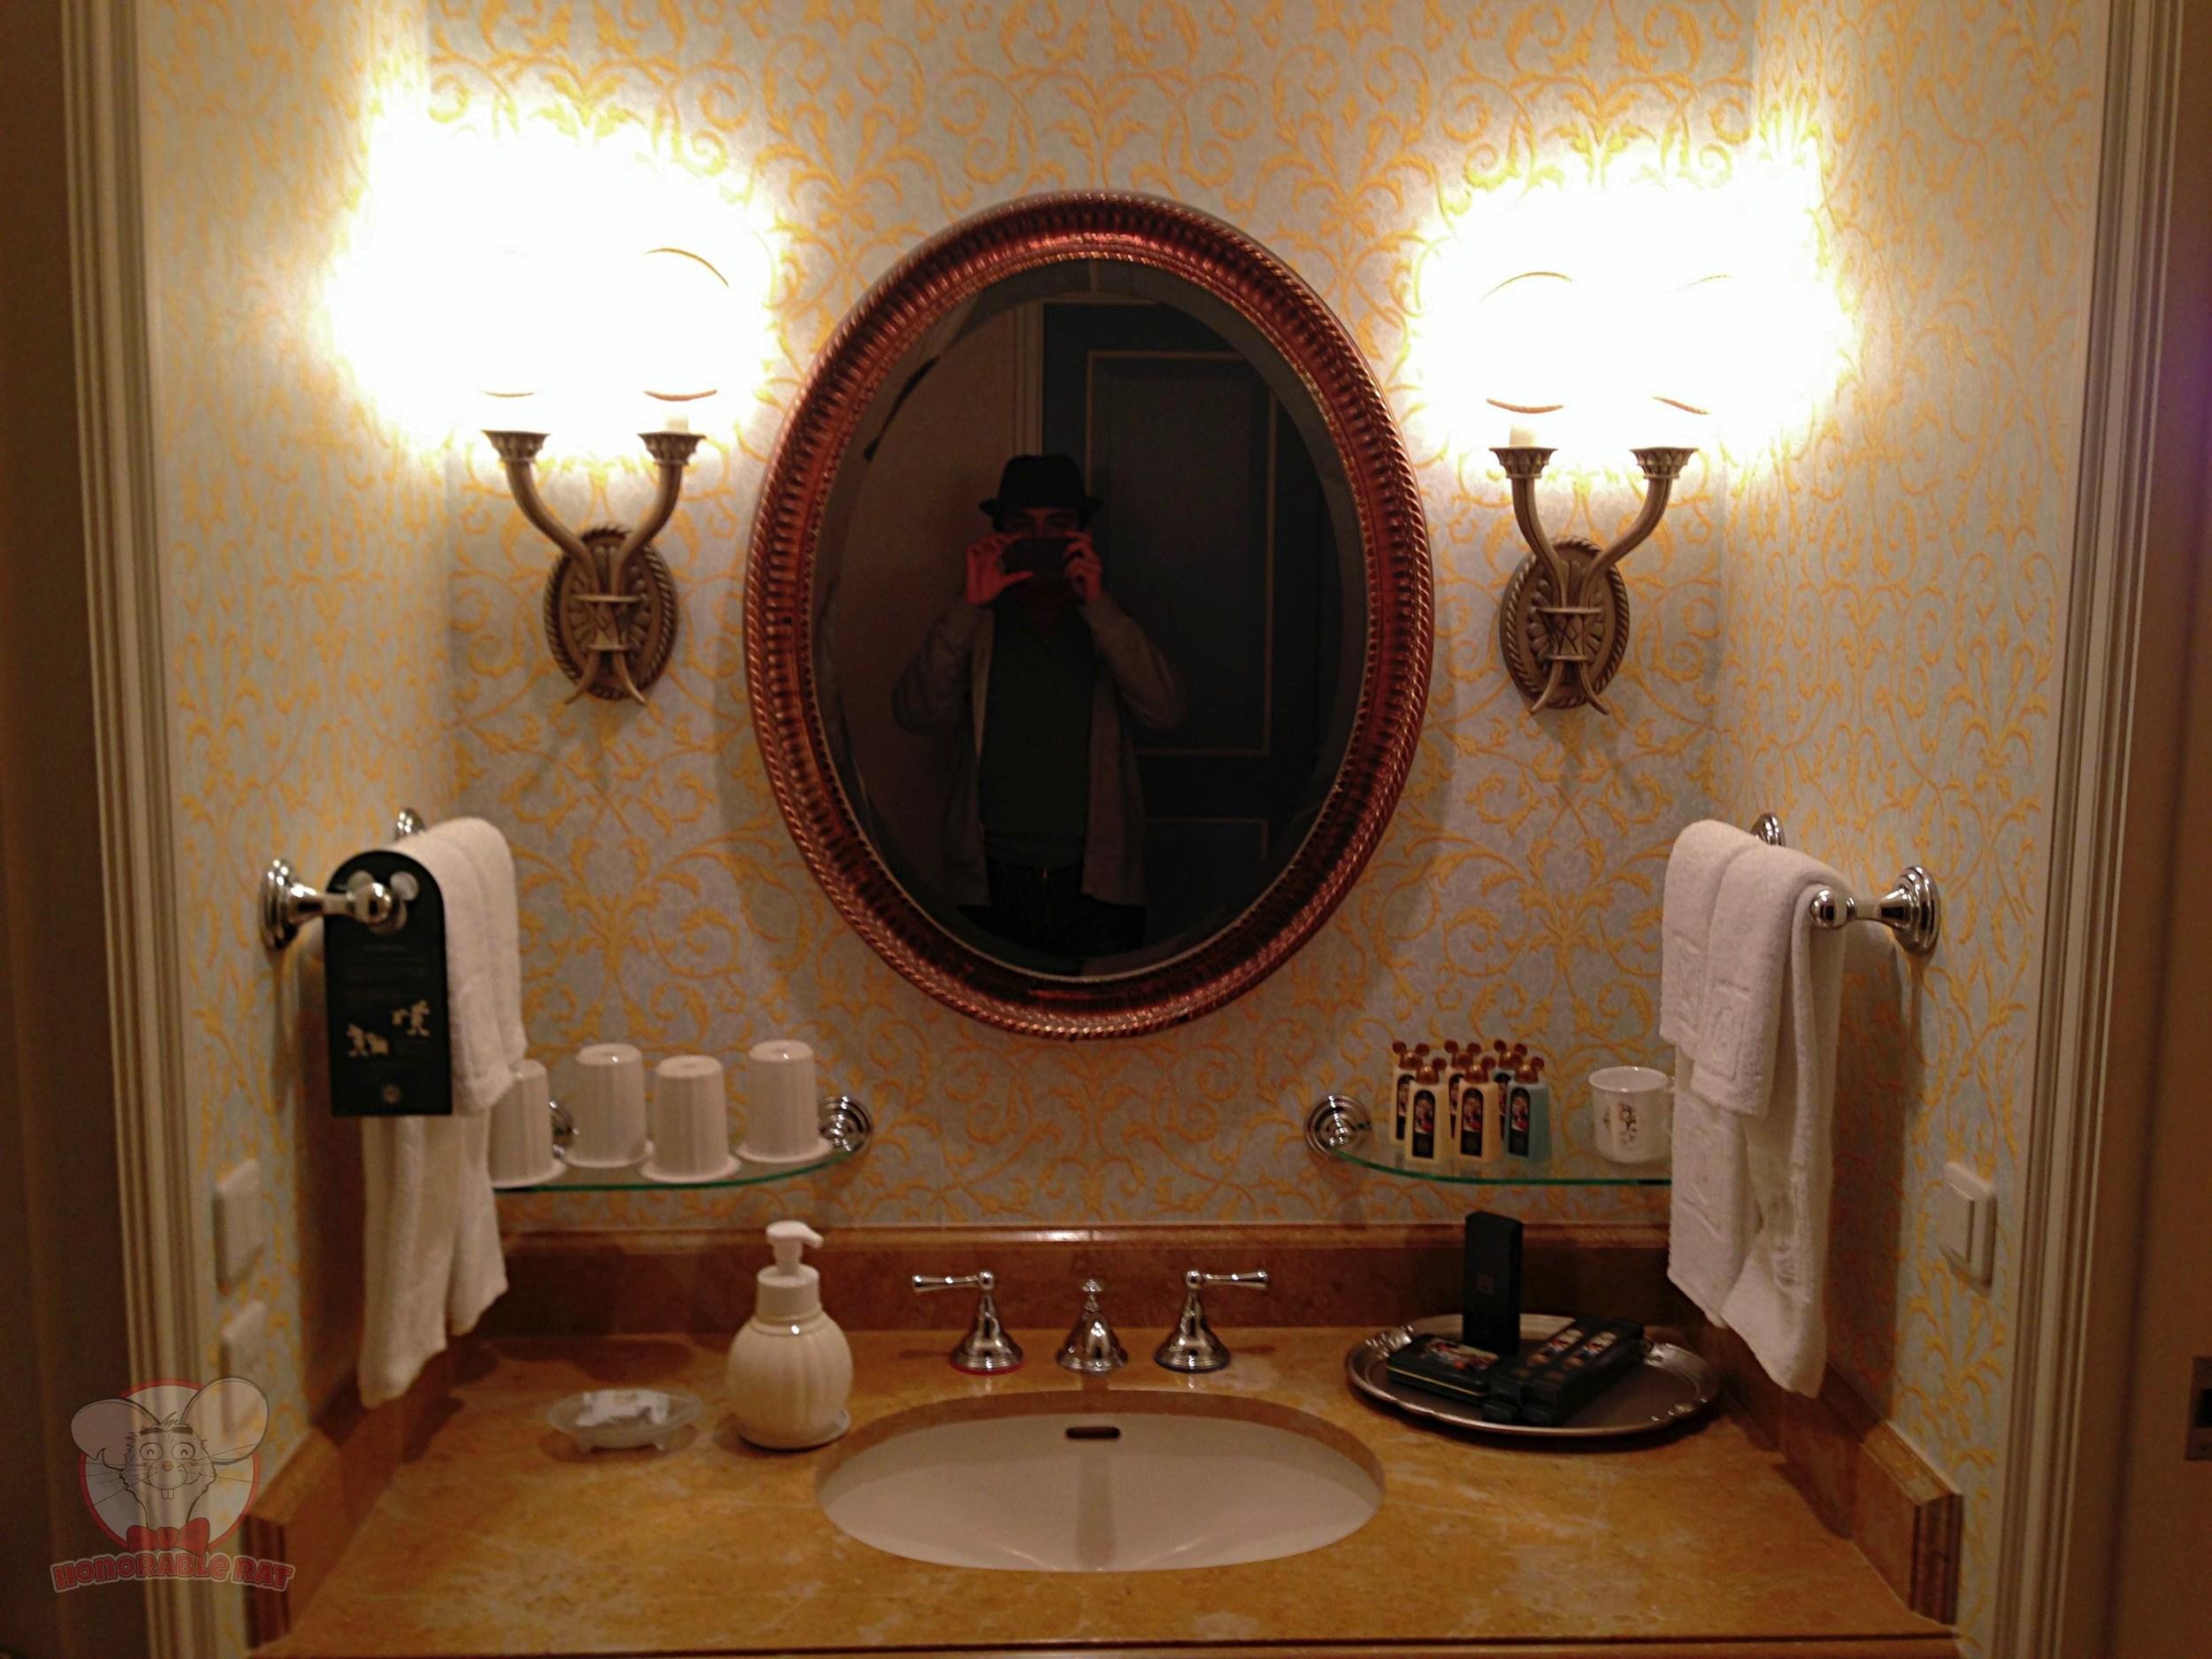 Sink area of the room